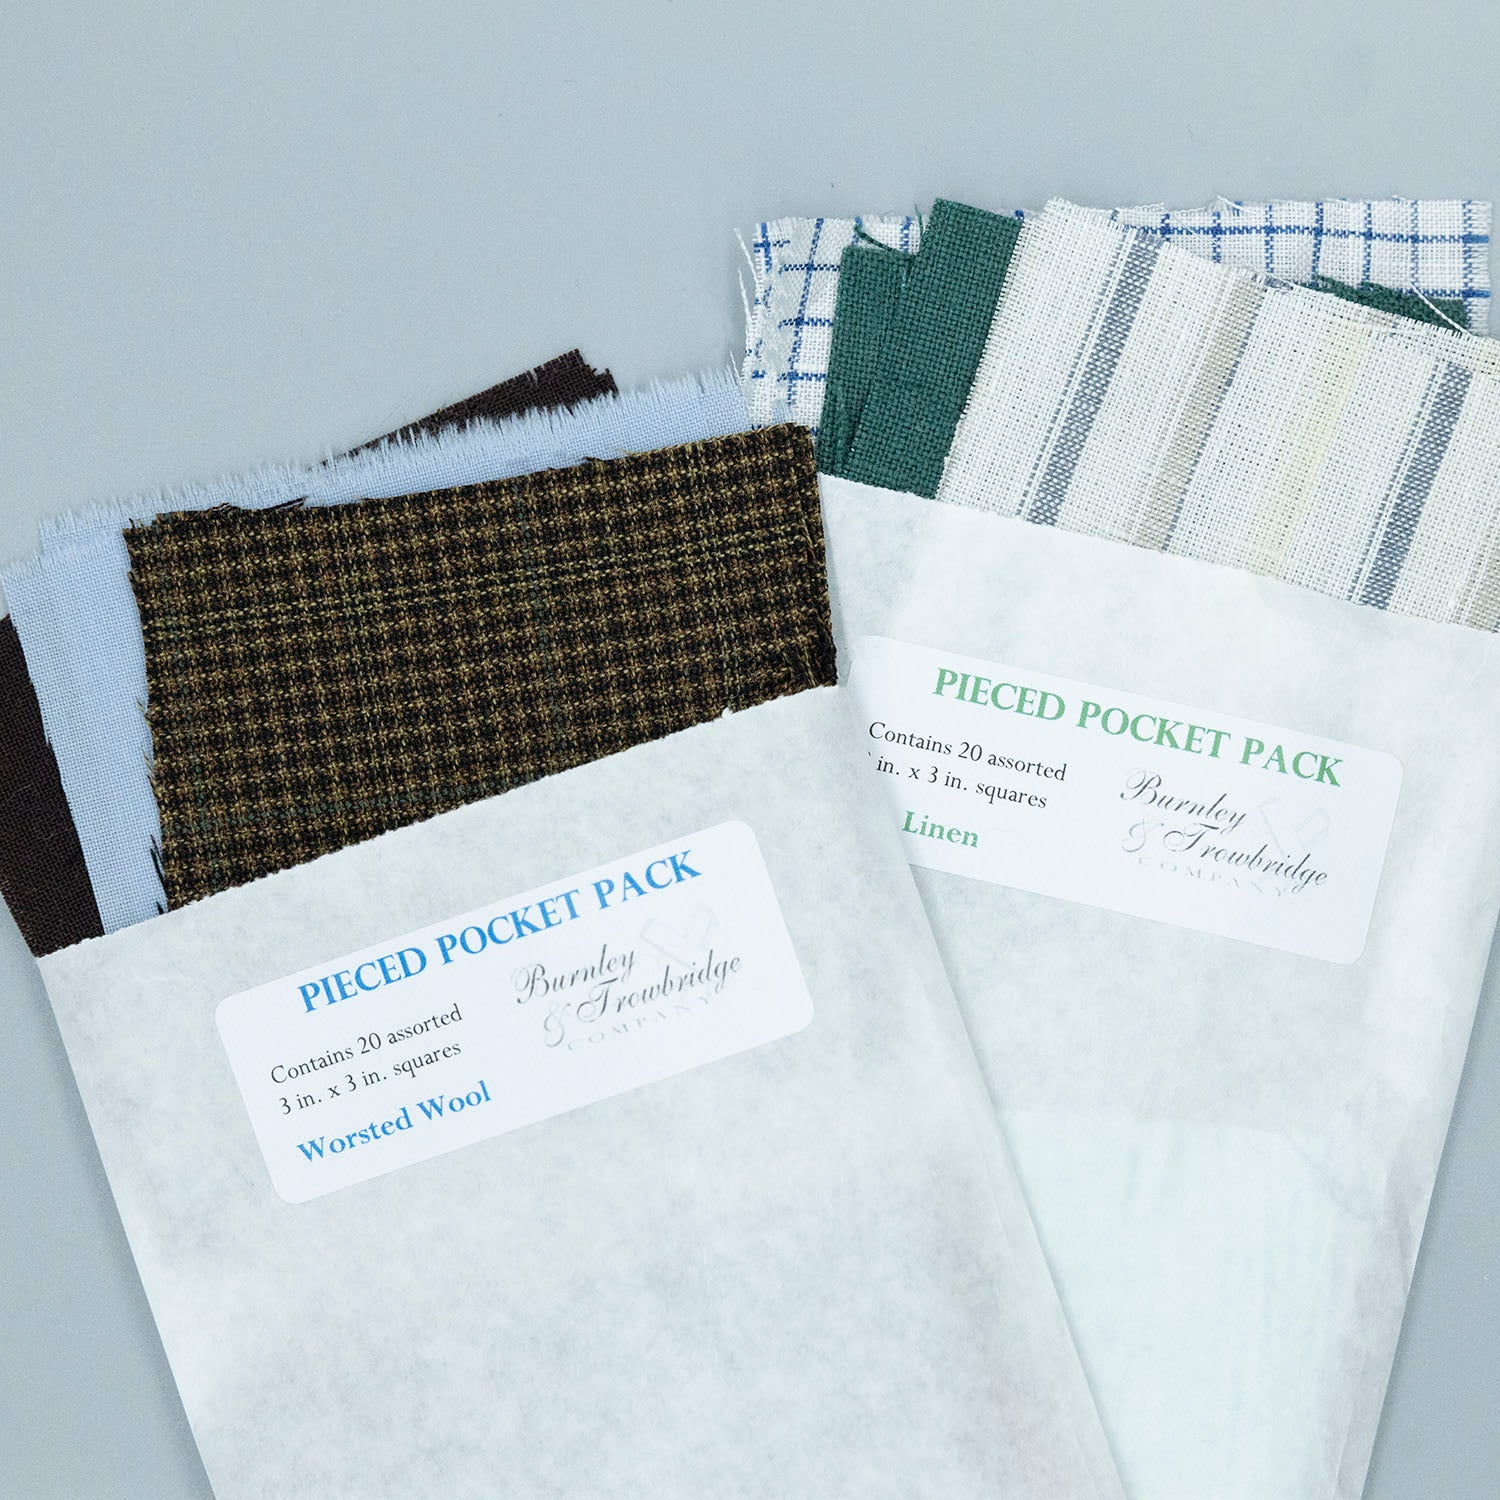 Pieced Pocket Packs - Linen or Worsted Wool